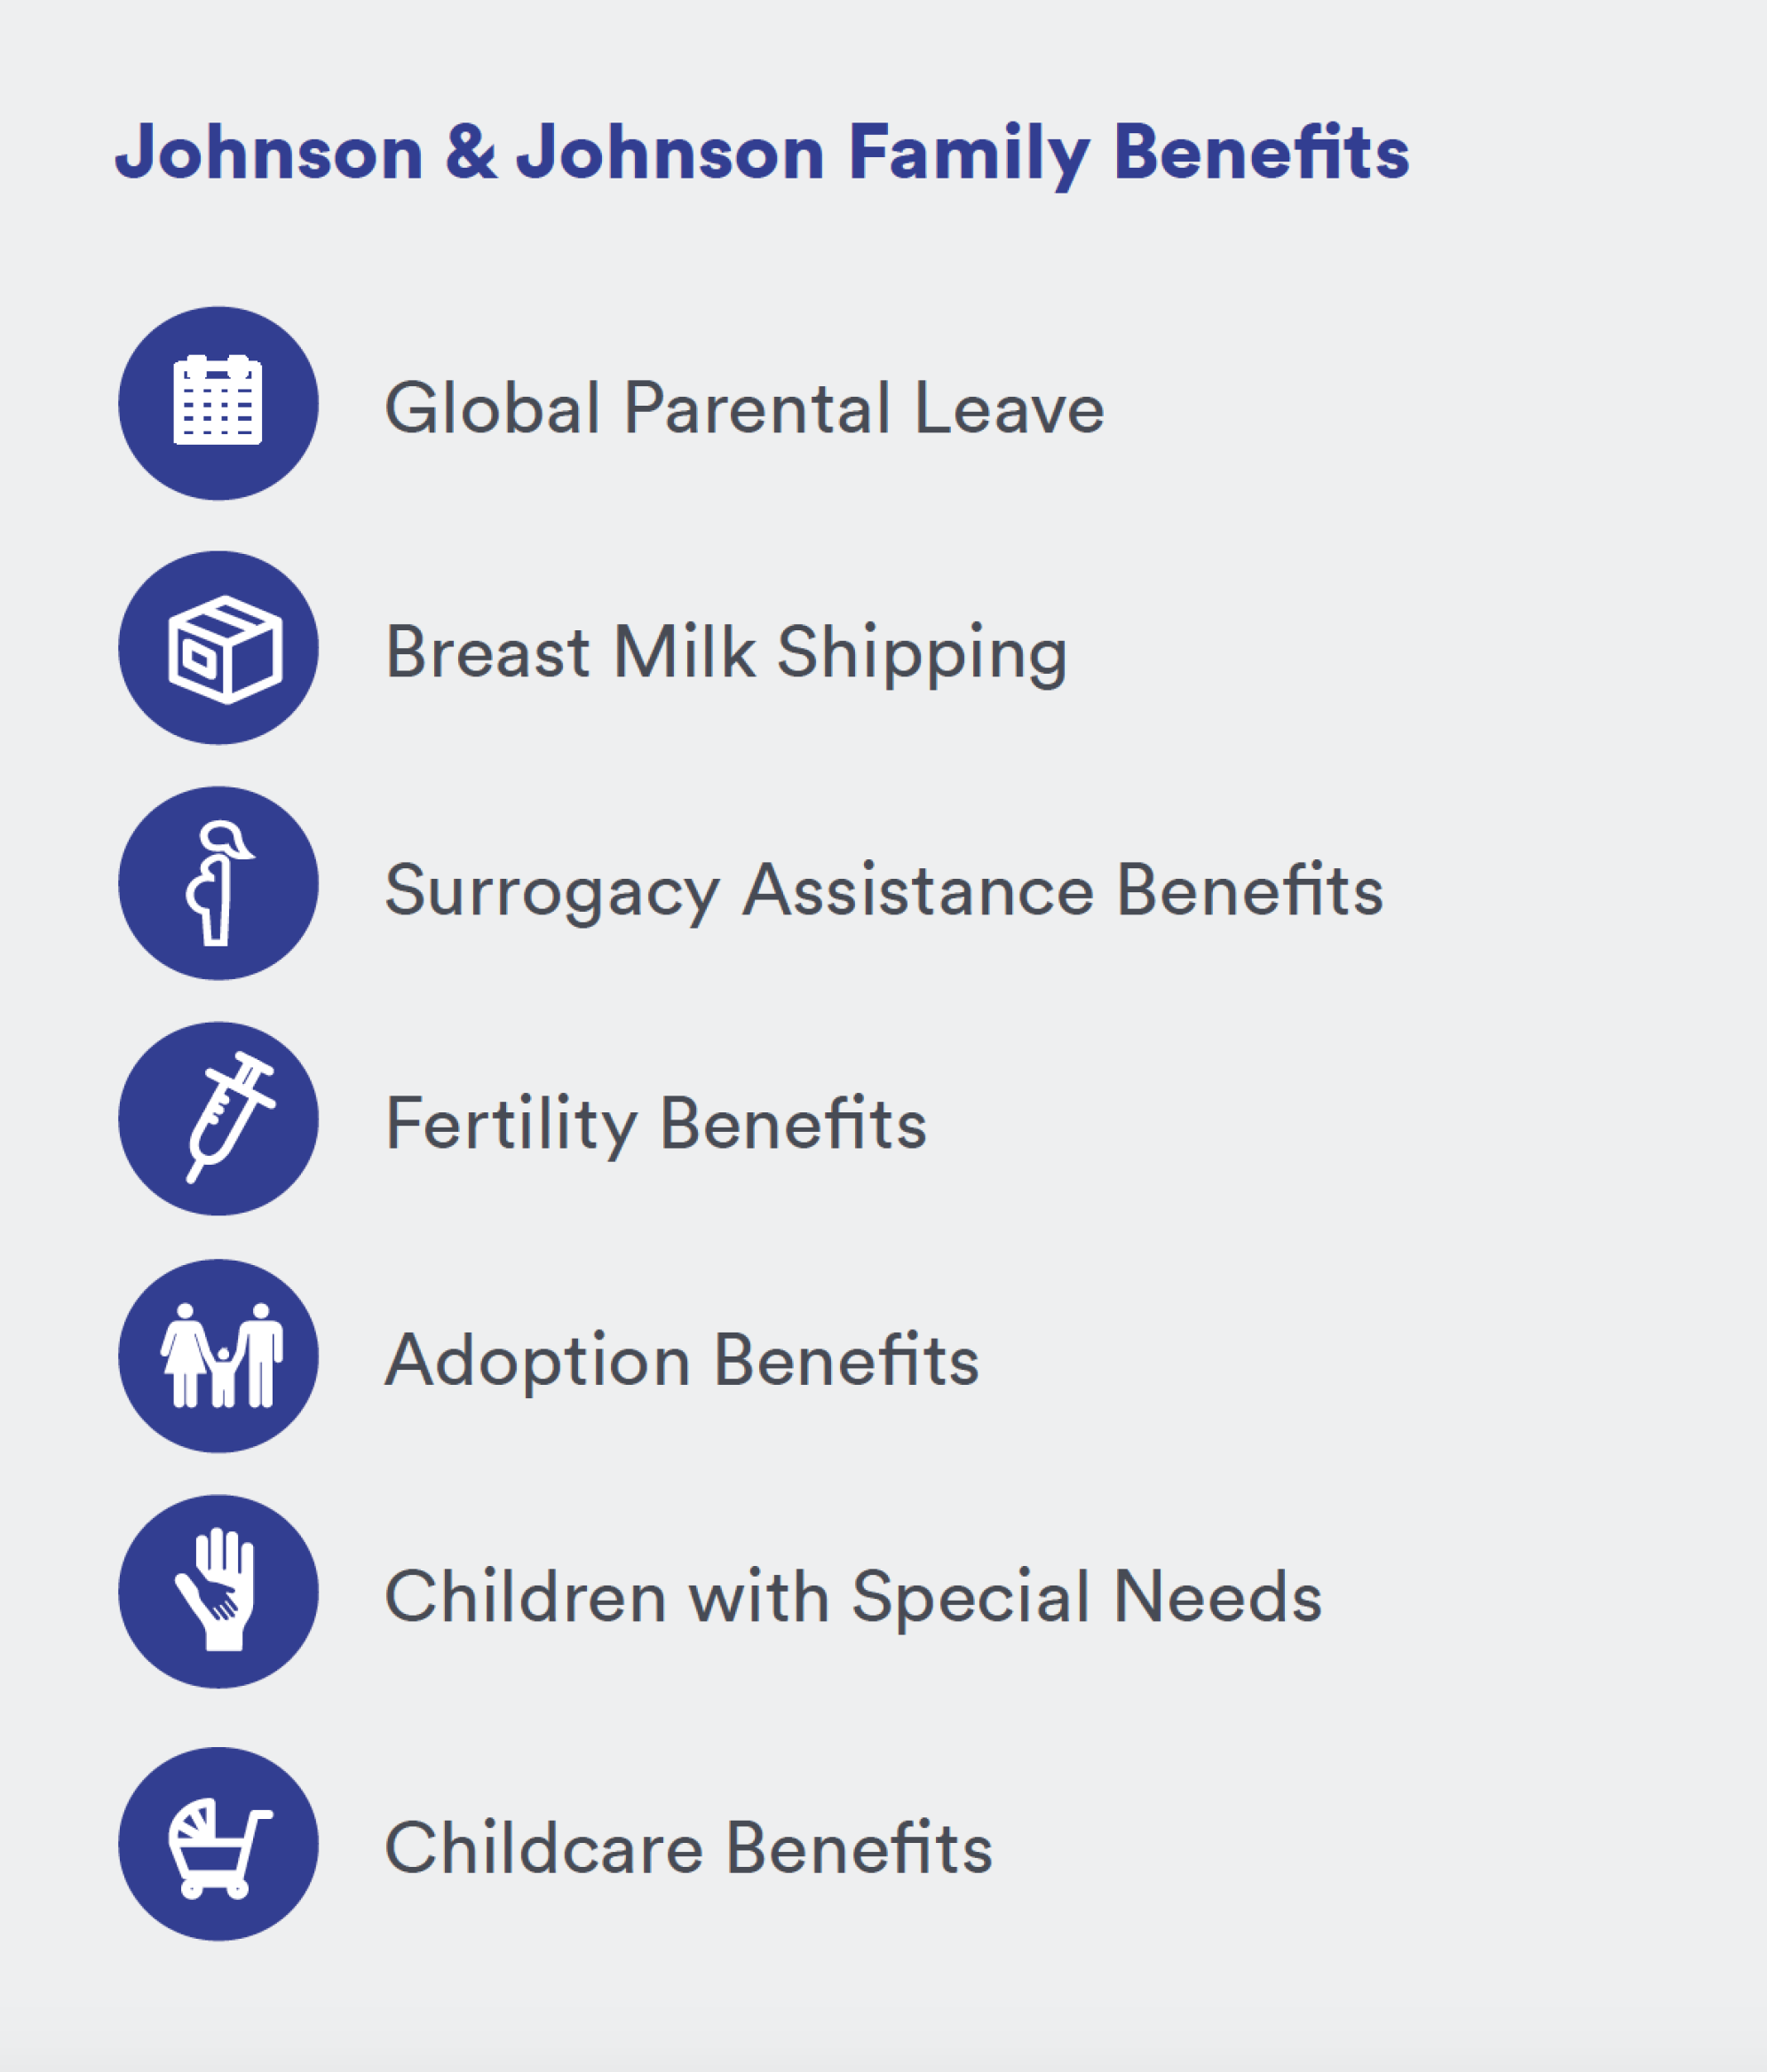 Johnson & Johnson Family Benefits